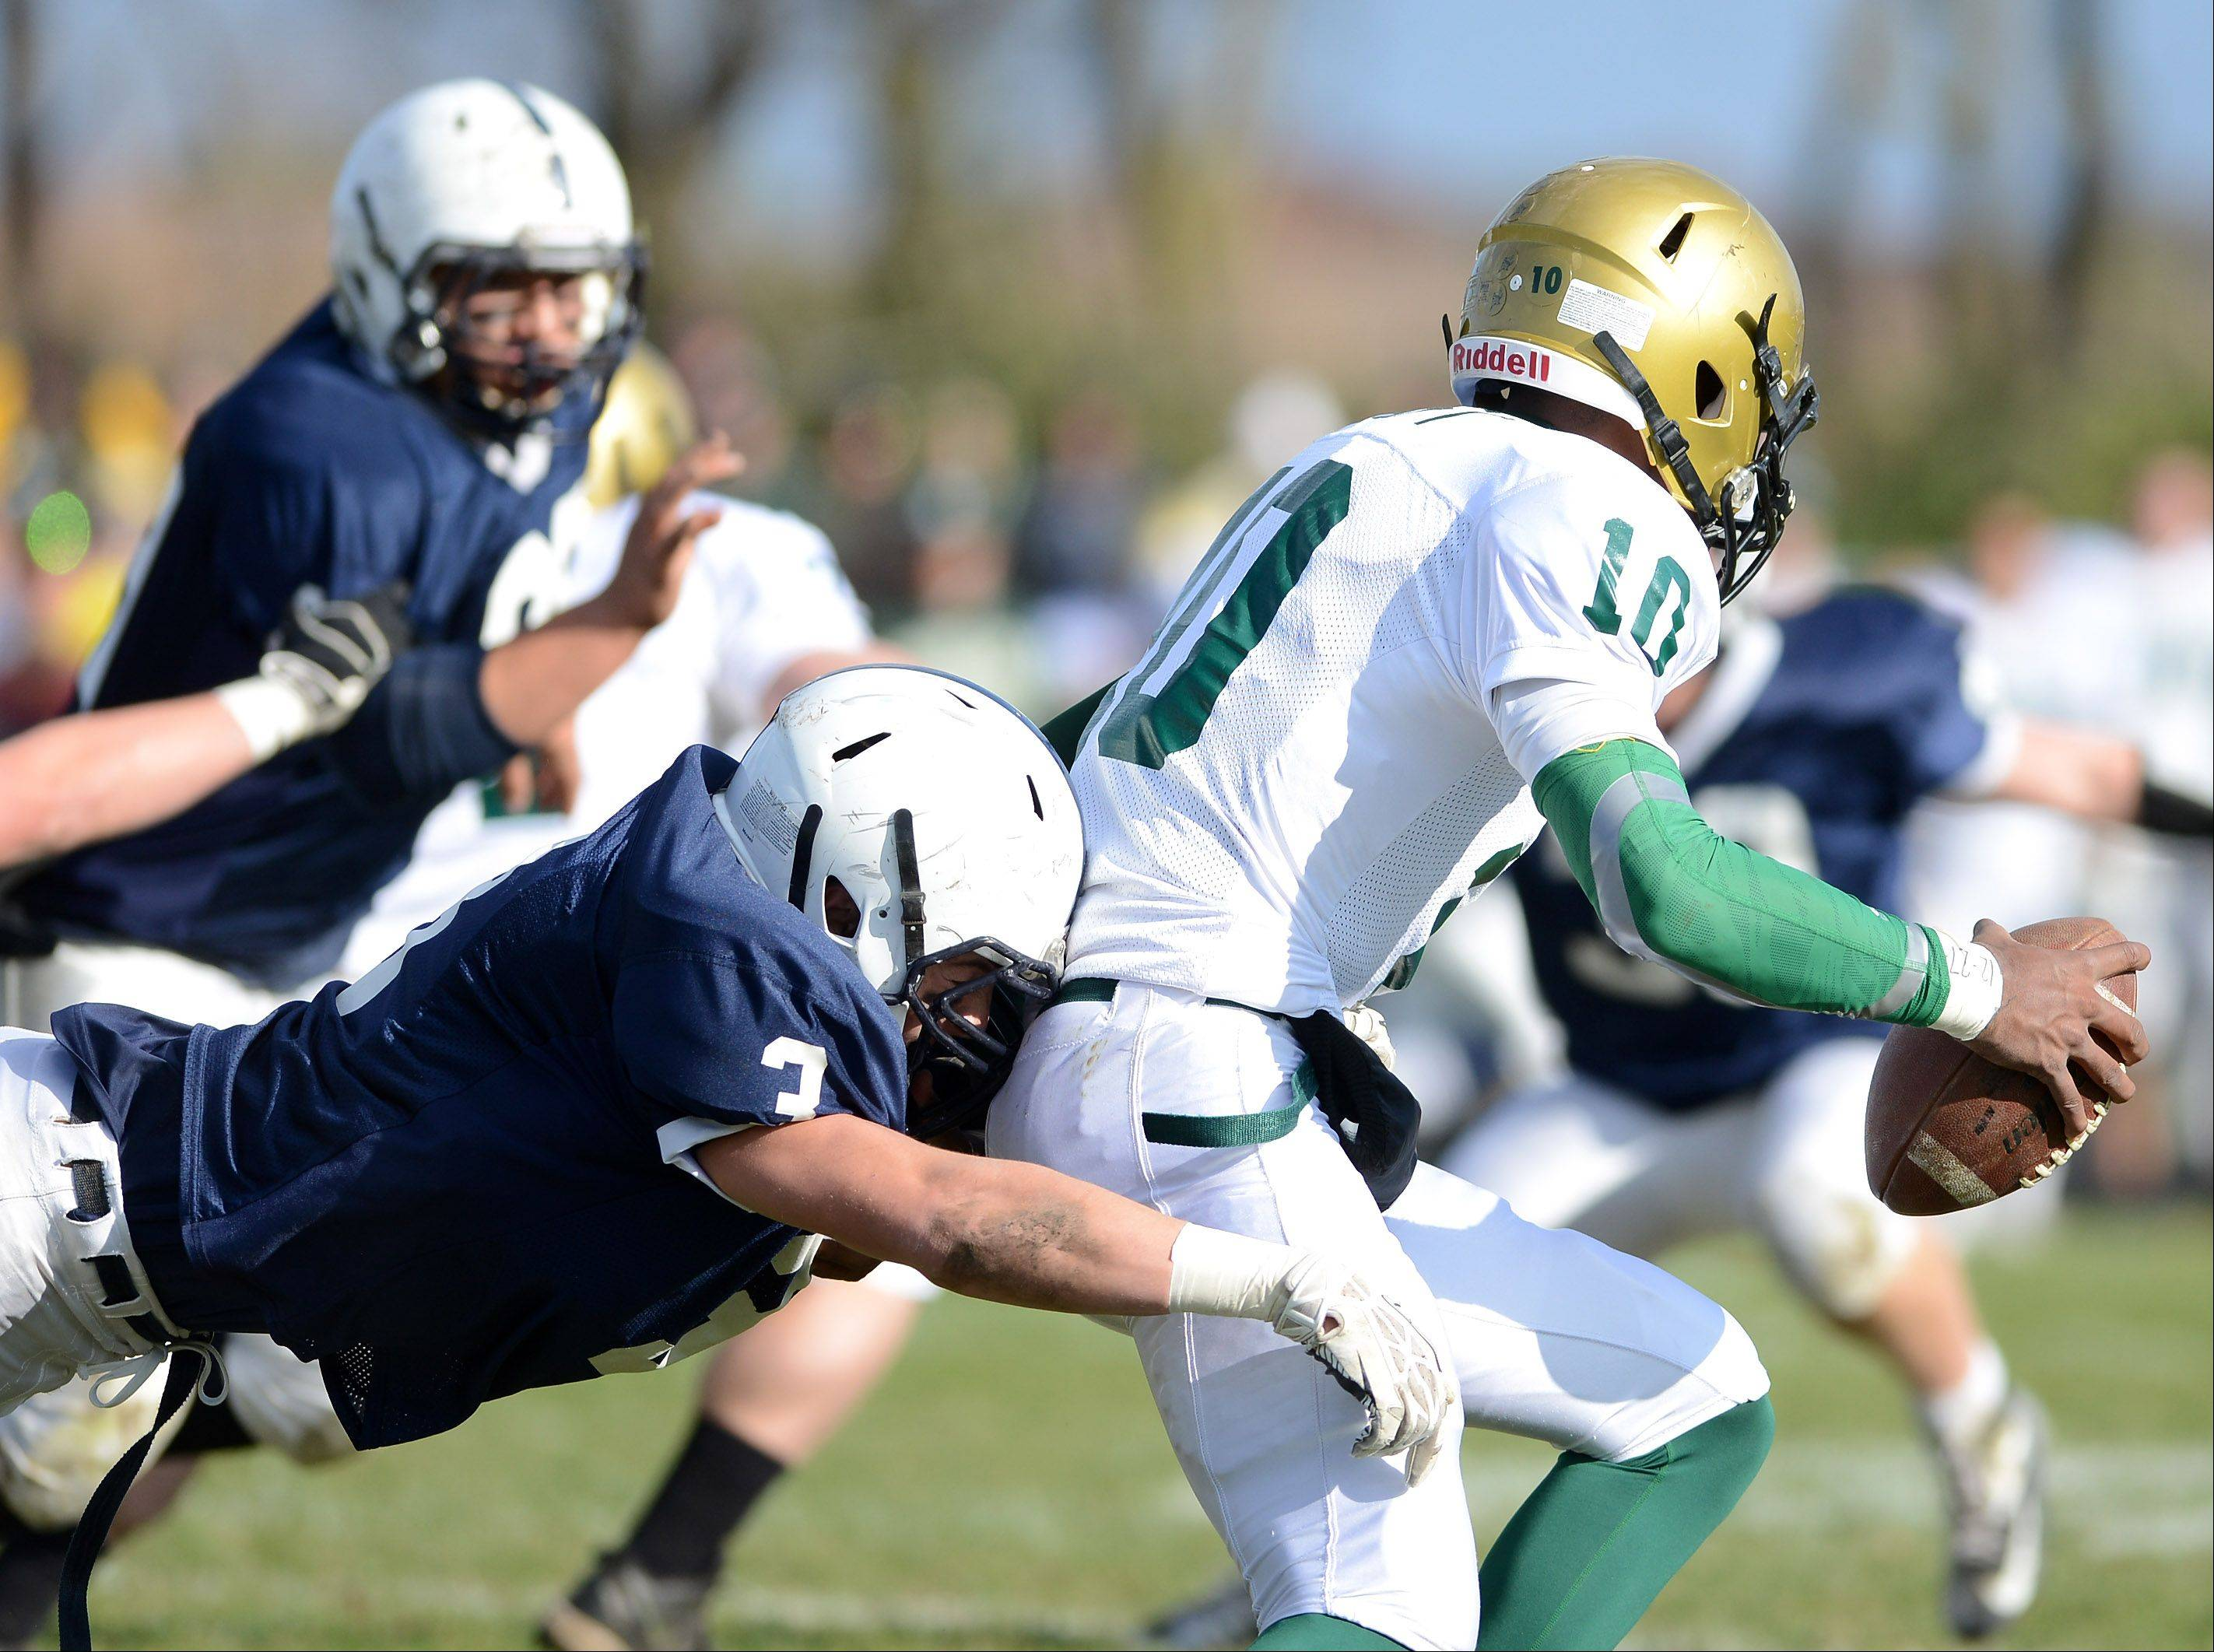 Cary-Grove's Joey Maxwell (3) sacks Boylan Catholic quarterback Demry Croft (10) during Saturday's game in Cary.